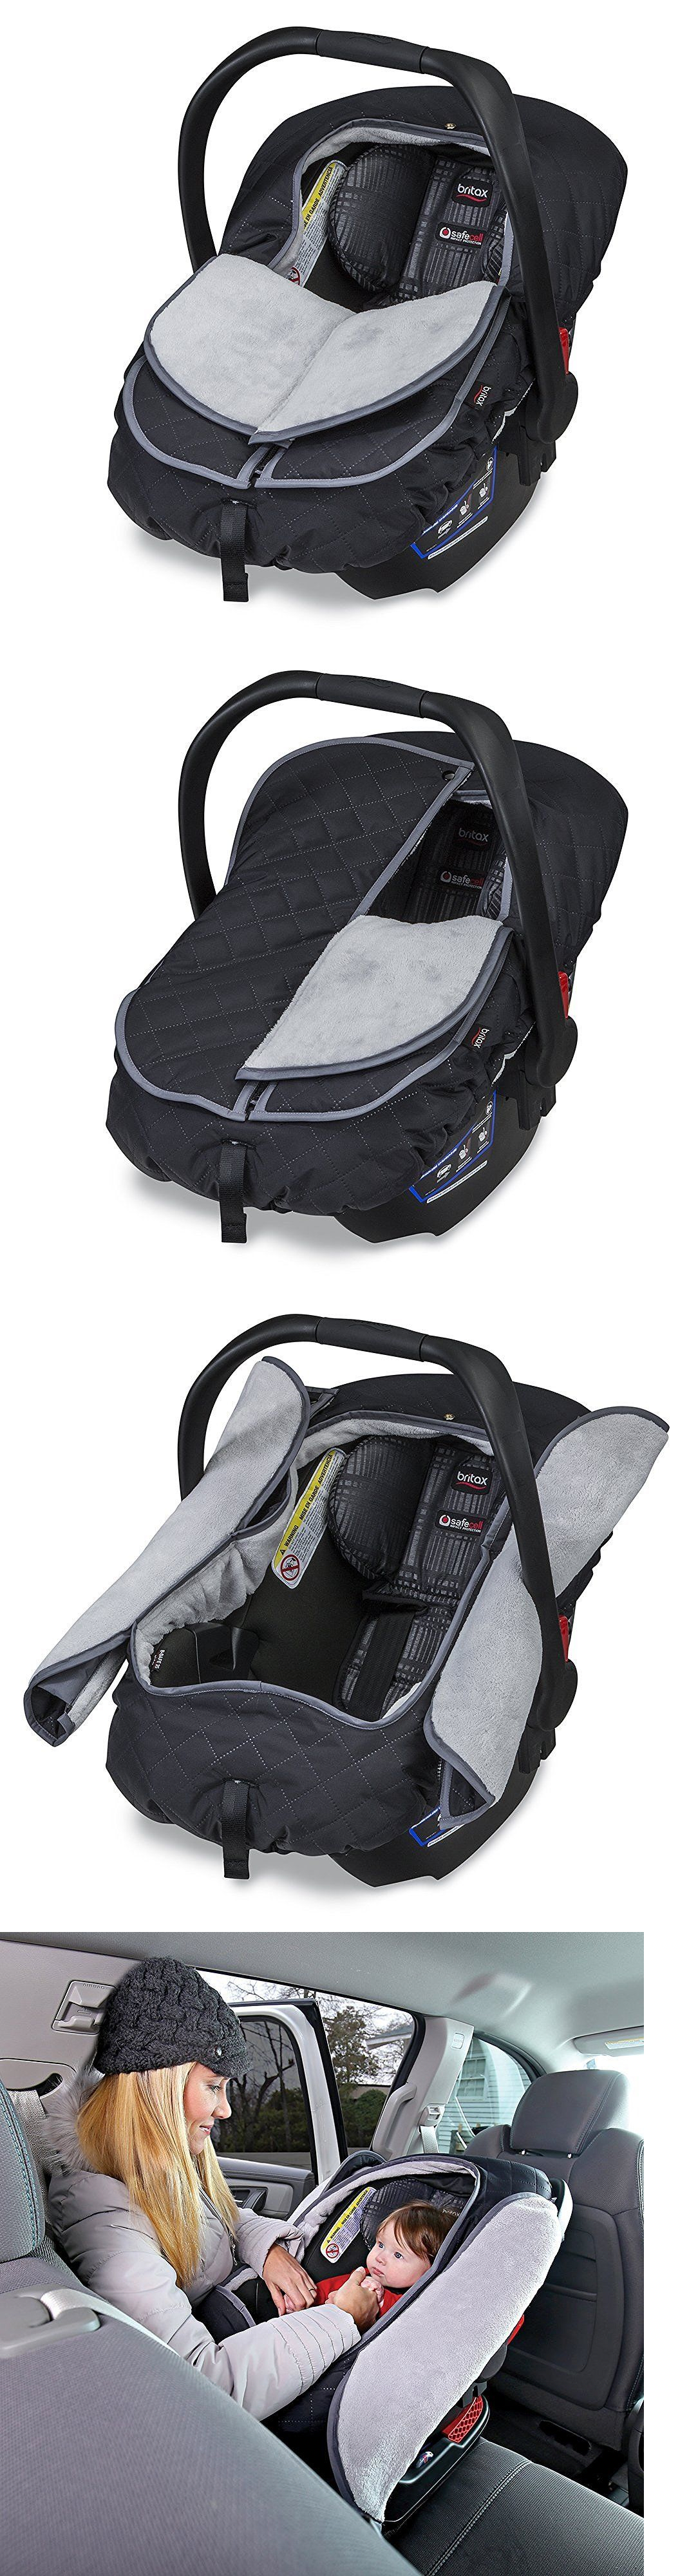 Baby Britax B Warm Insulated Infant Car Seat Cover In Polar